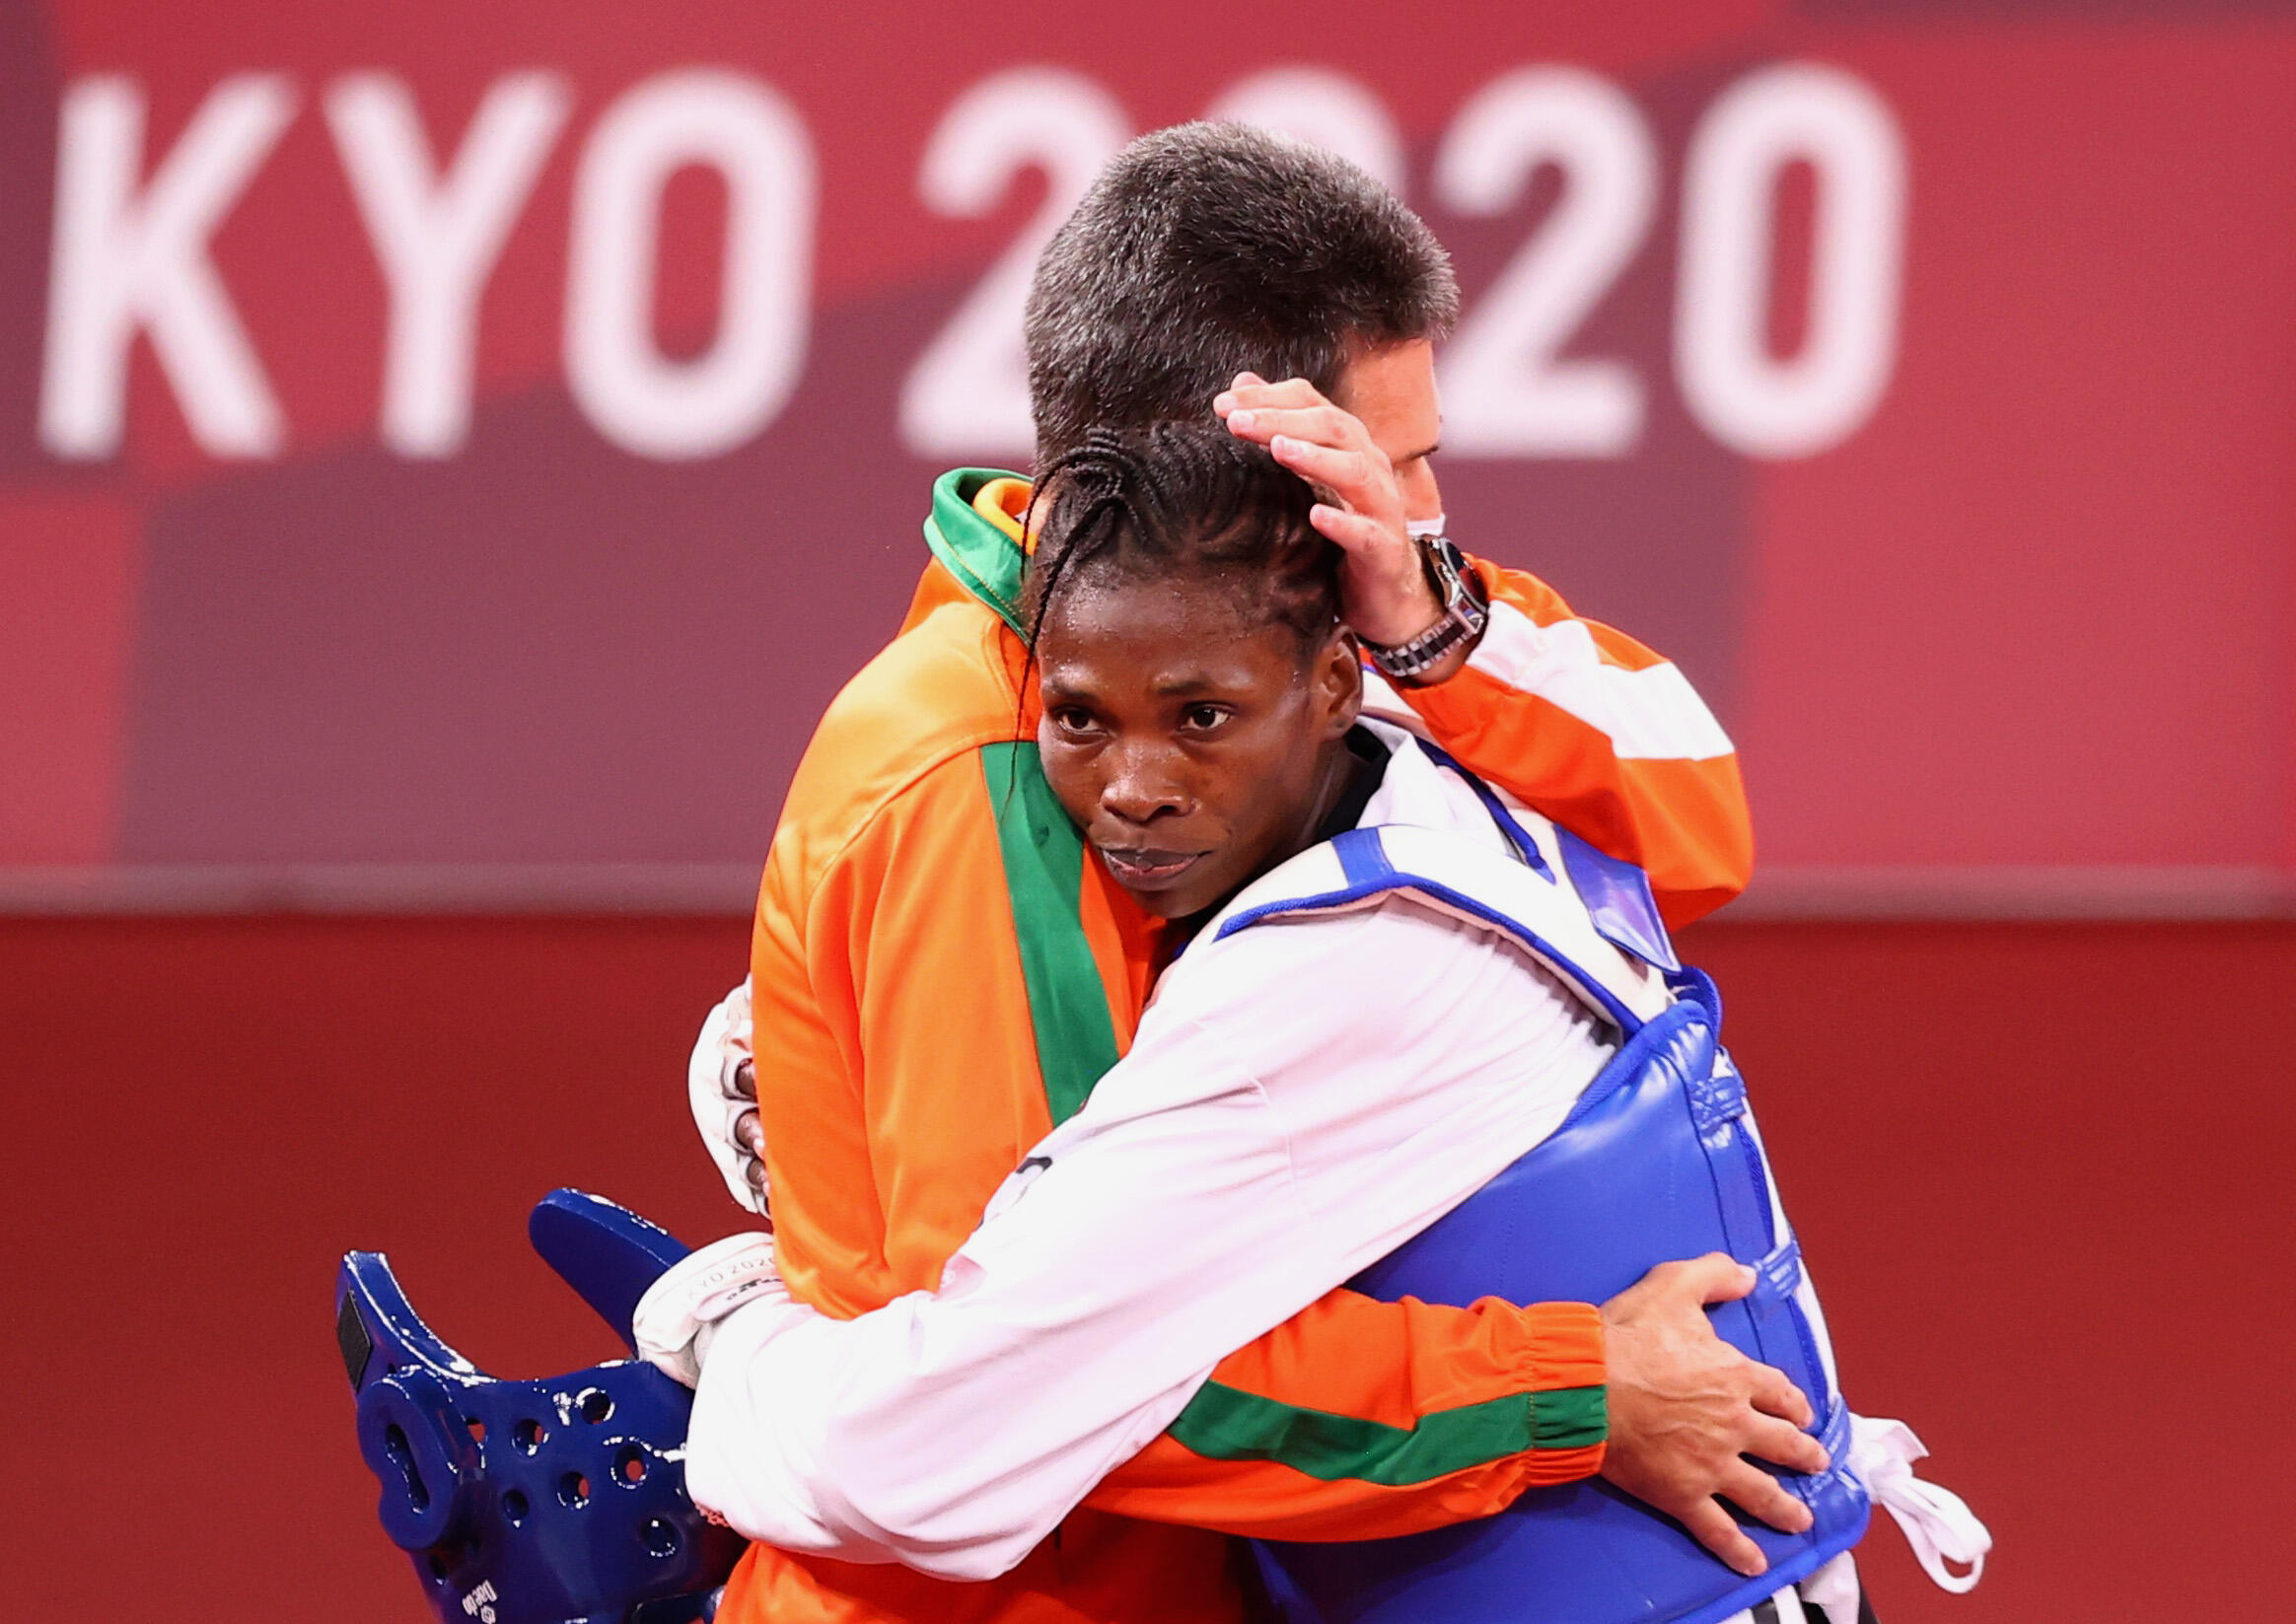 Nigerian Tekiath Ben Yessouf with her coach at the Tokyo 2021 Olympic Games.